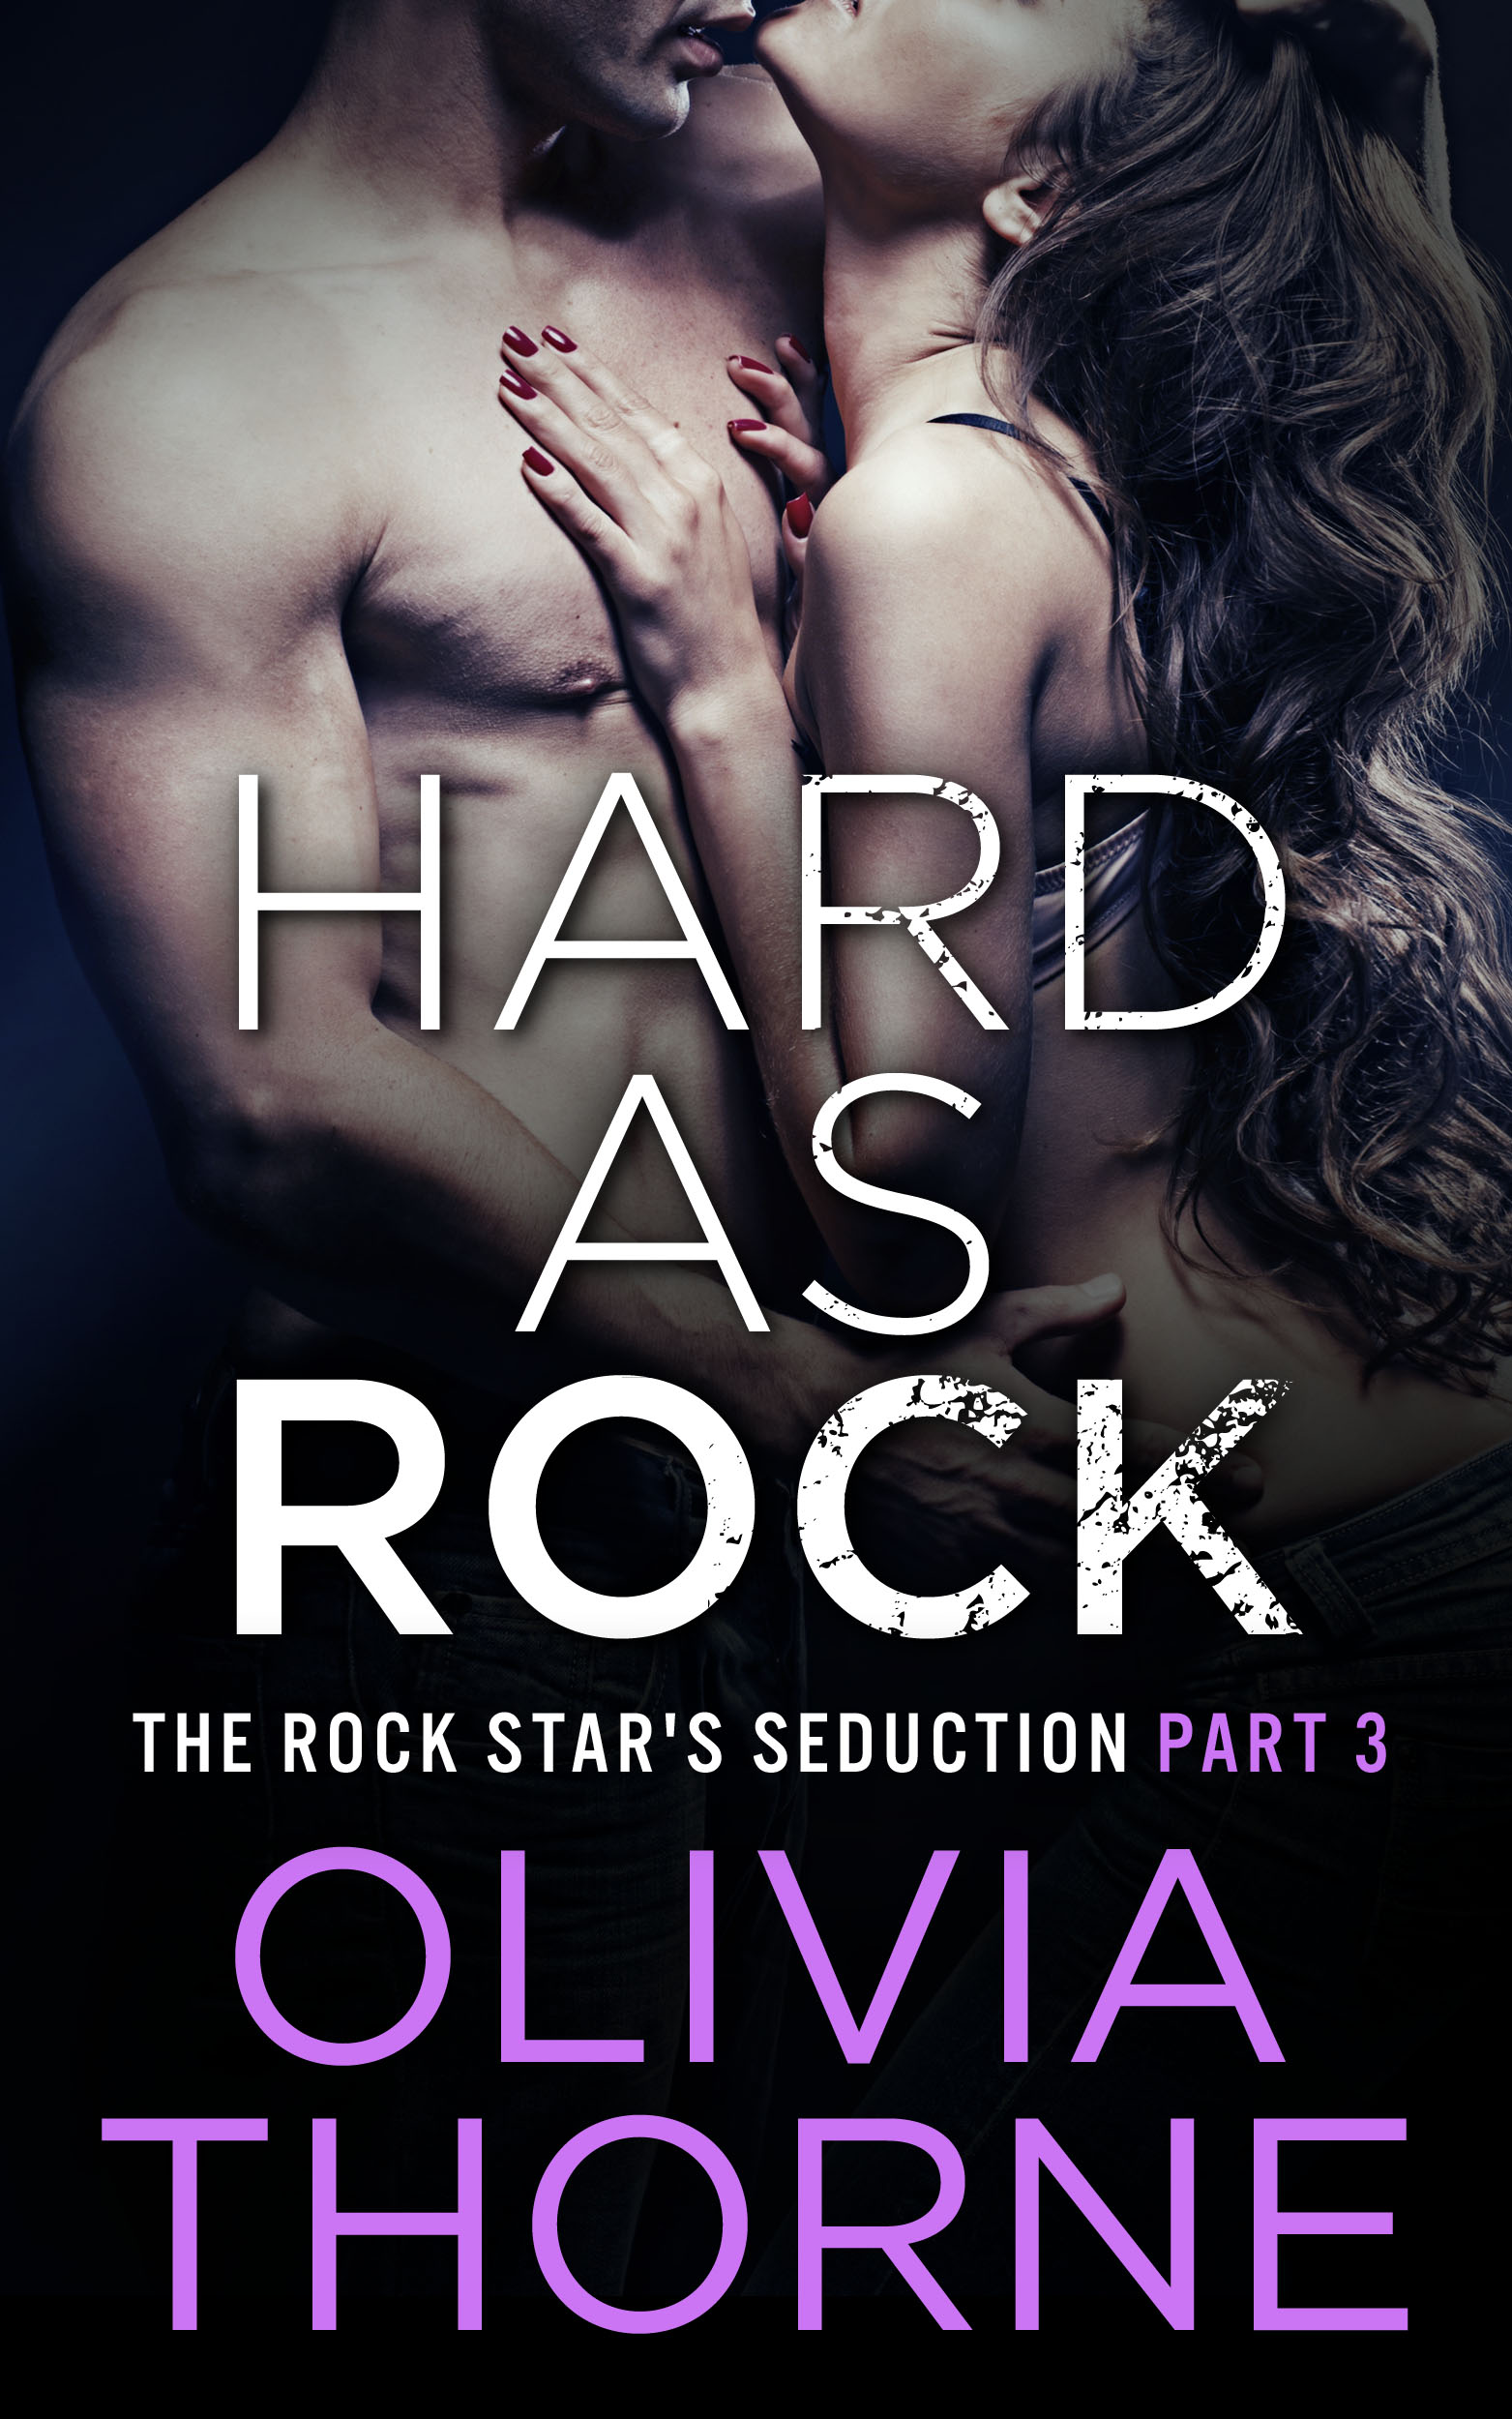 Olivia Thorne - Hard As Rock (The Rock Star's Seduction Part 3)